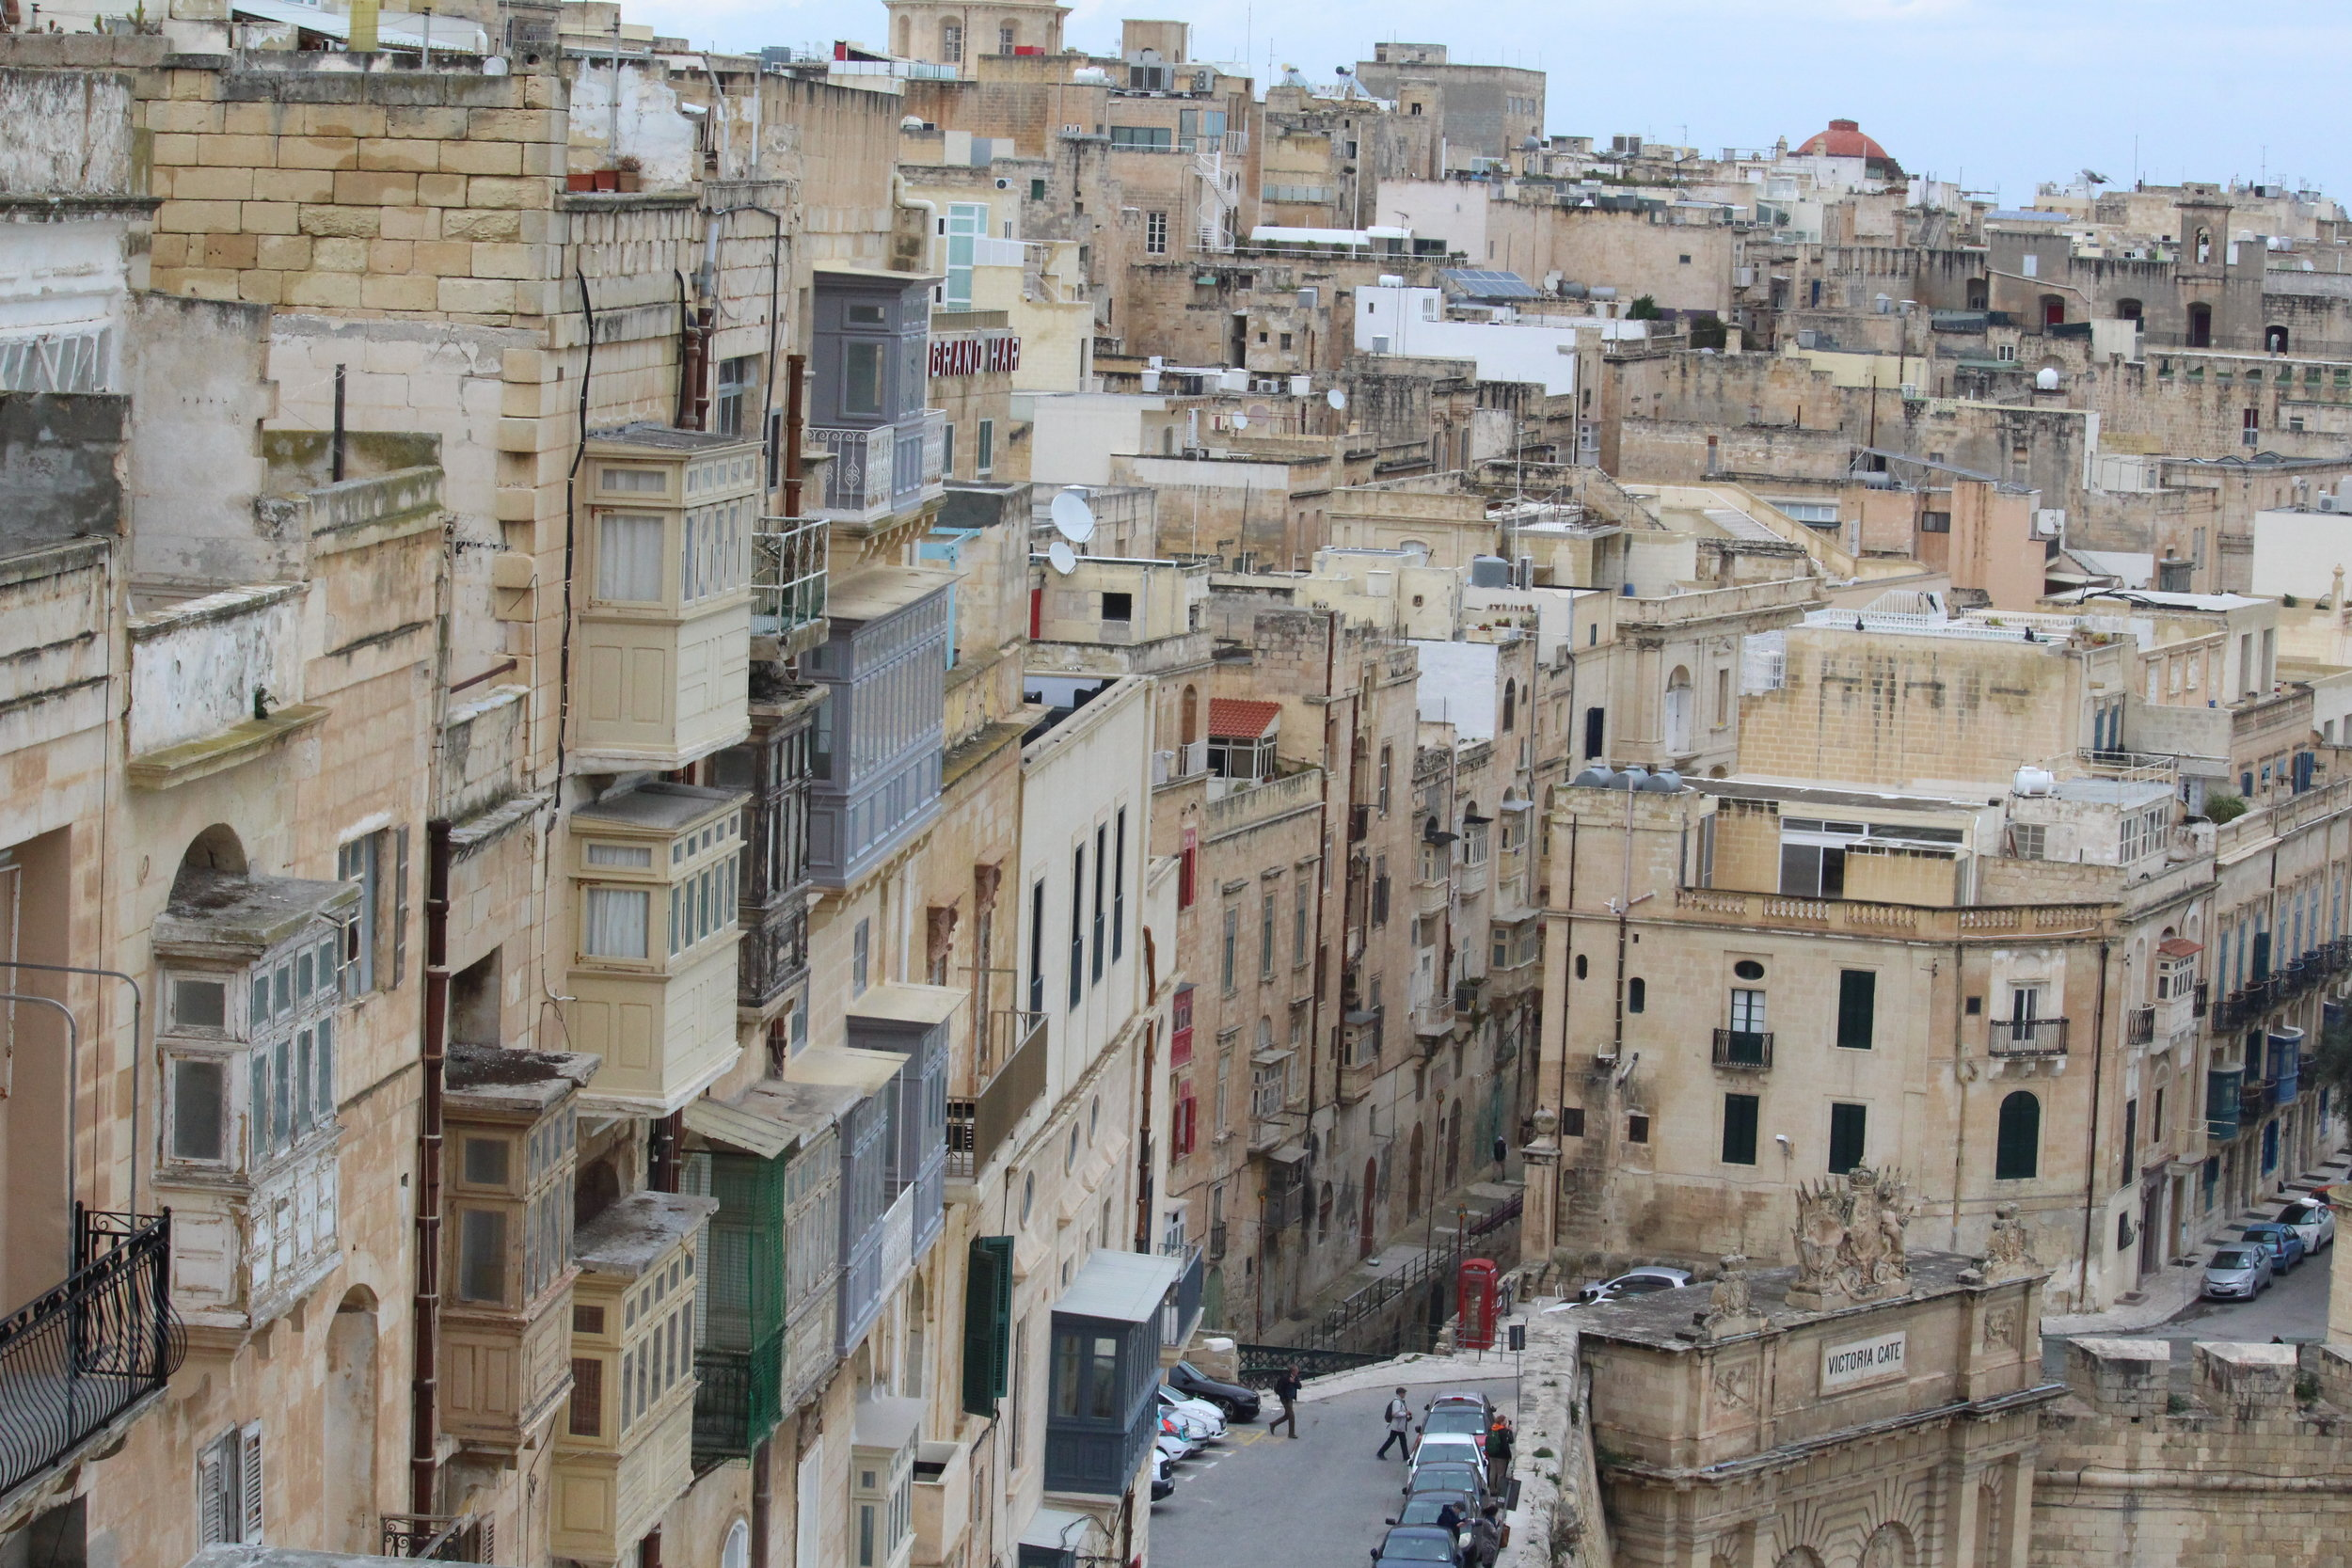 I Heart Malta! - My first visit to the beautiful Maltese Islands and more…